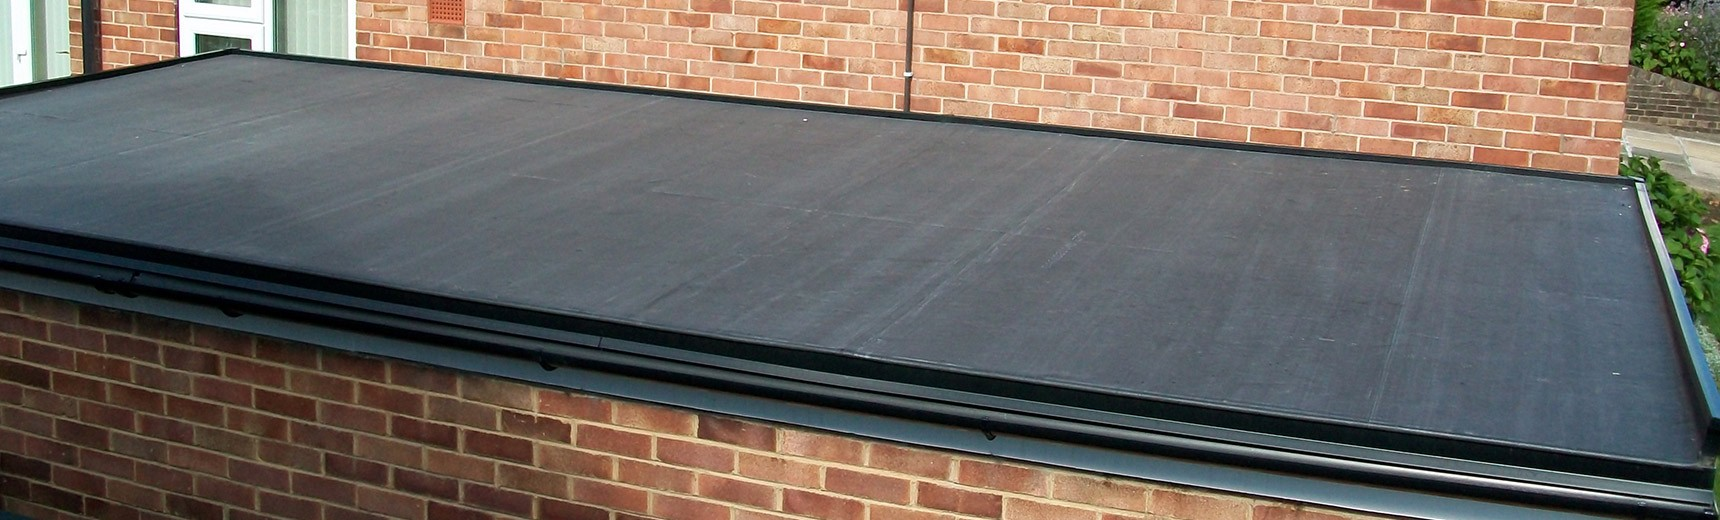 Rubber roof covering